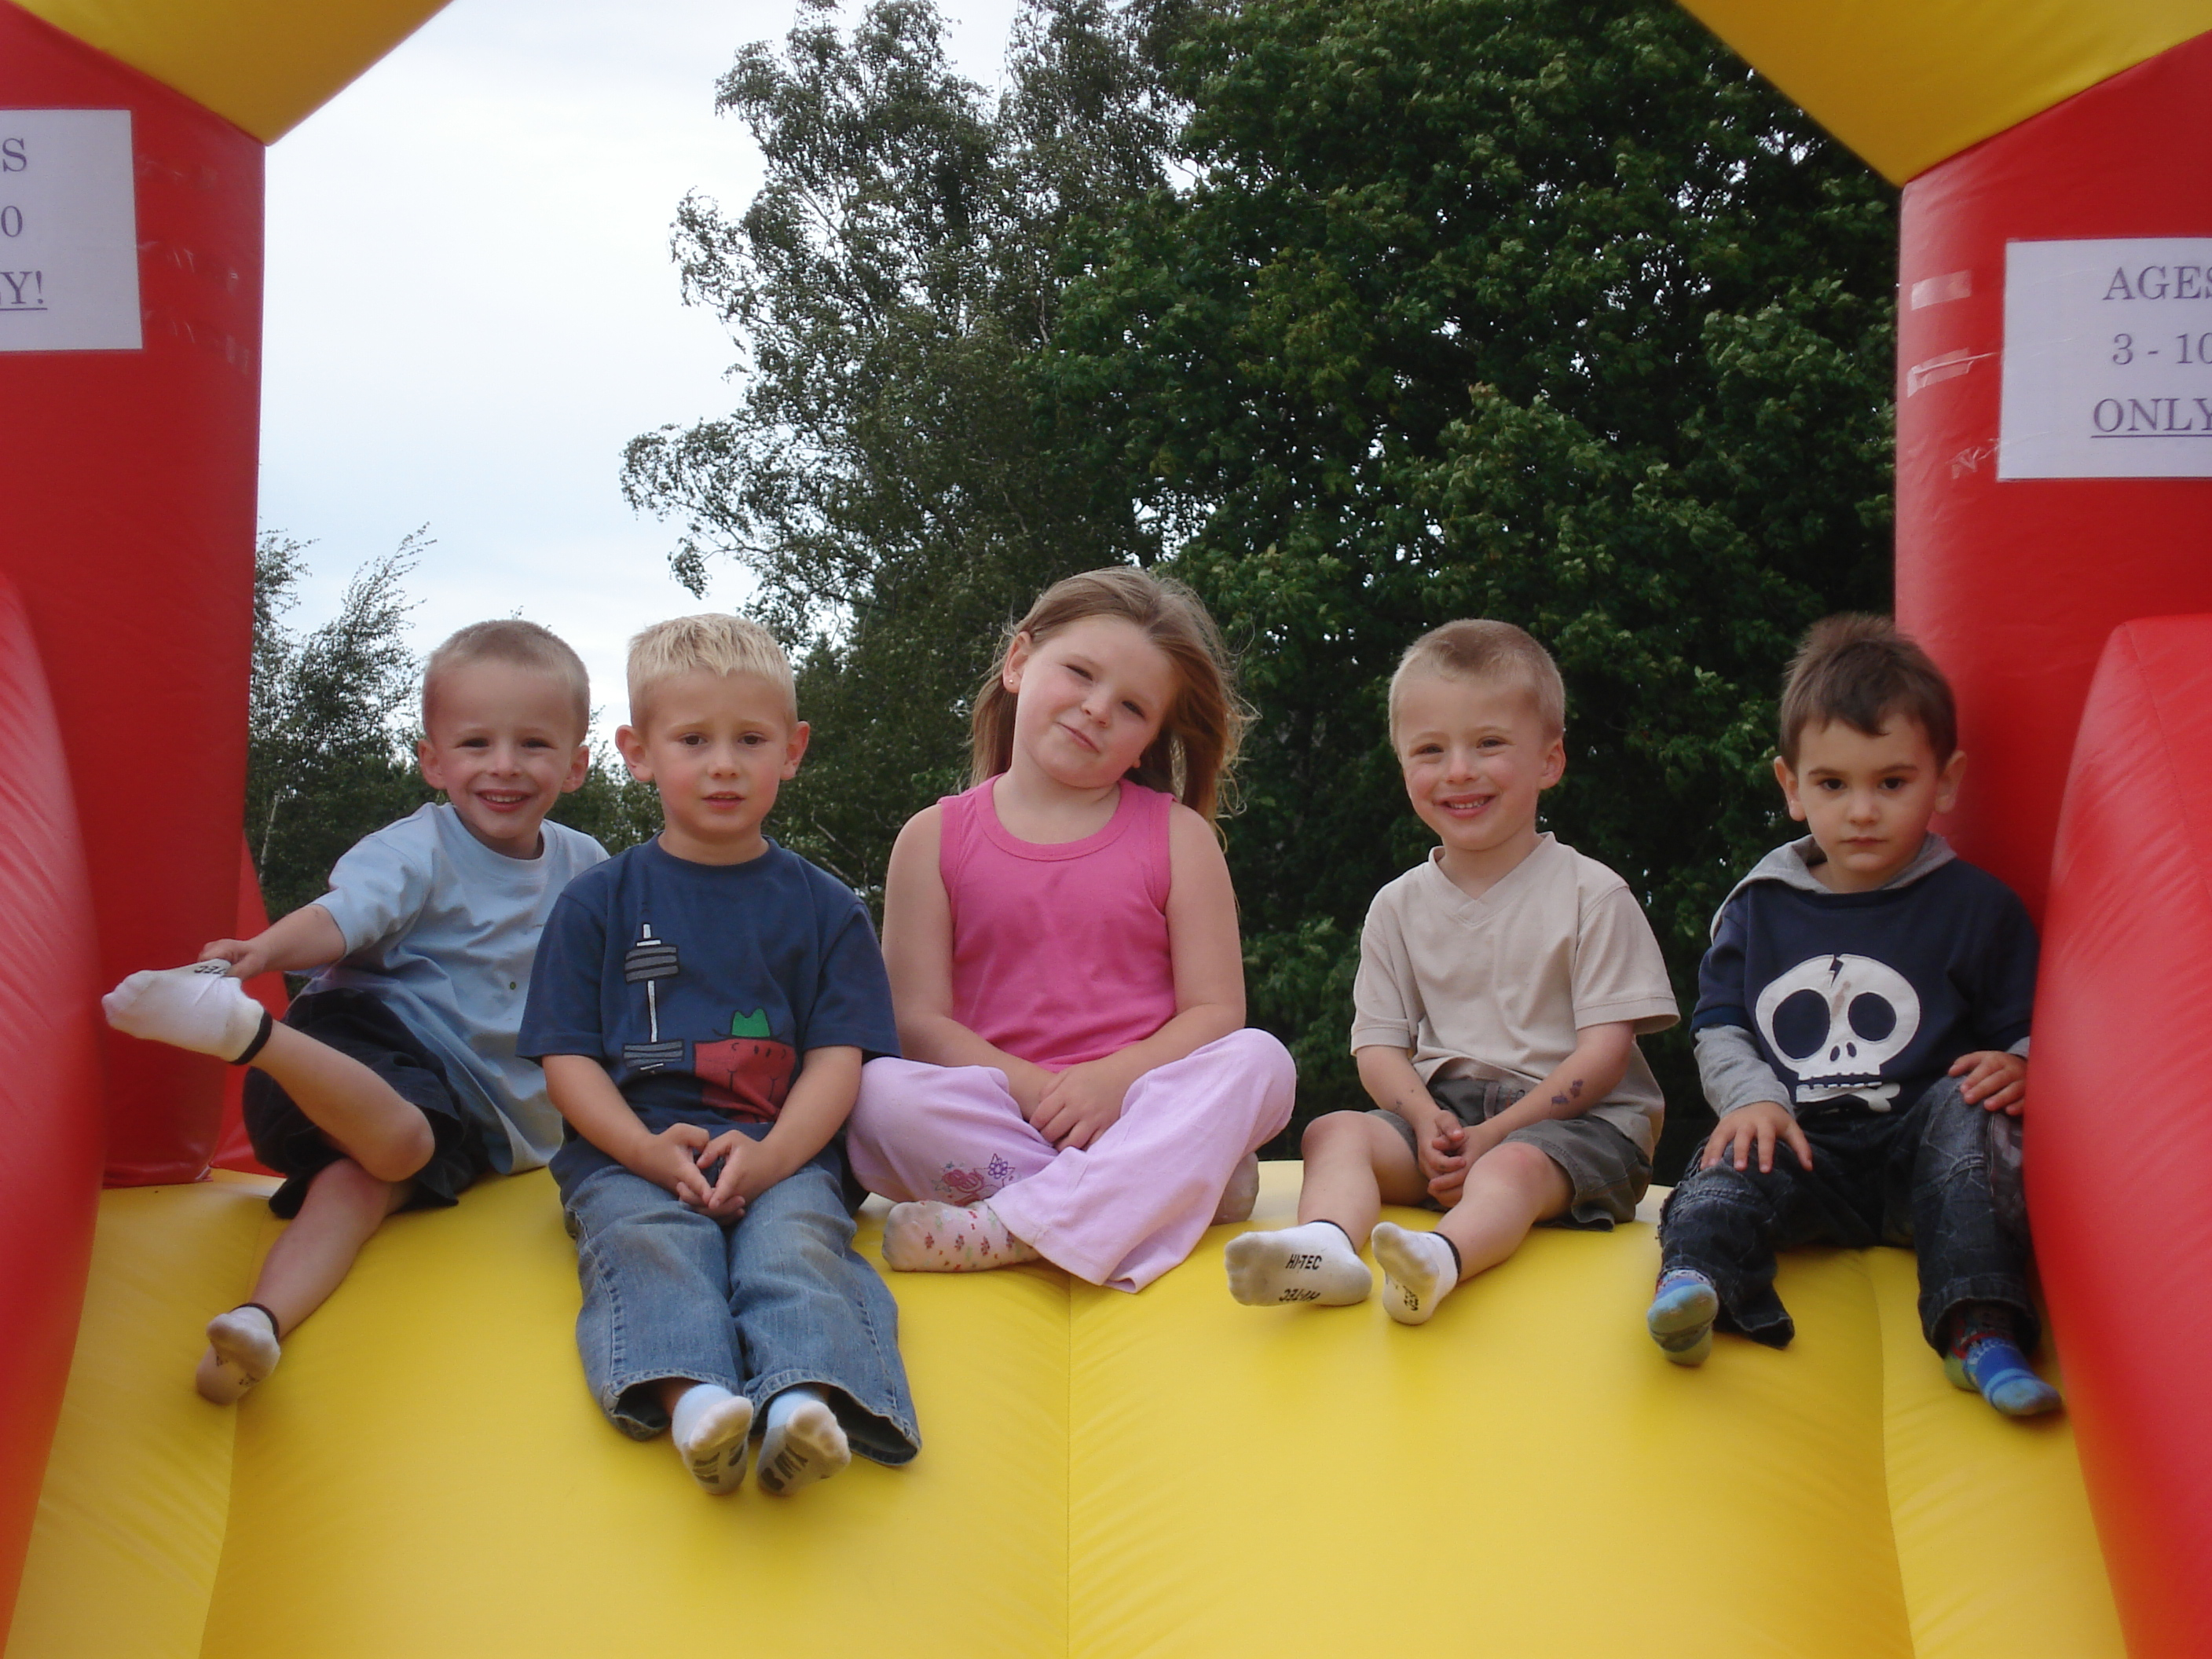 Kids on Inflatable